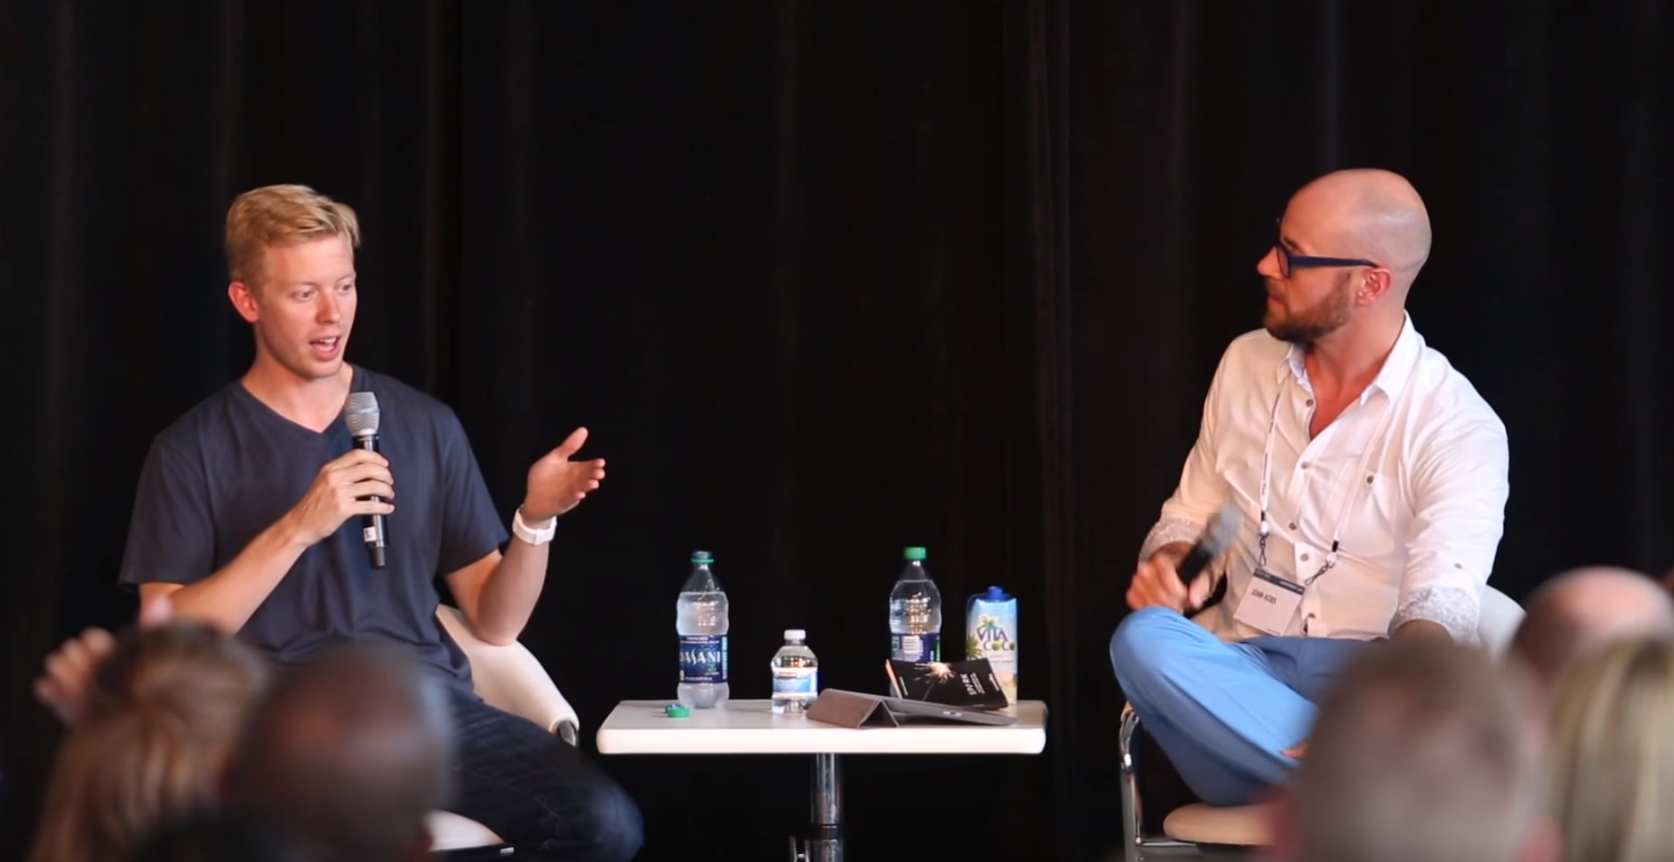 John interviews Steve Huffman, CEO of Reddit - September 2015   John sits down with Steve Huffman to talk about the founding story of RedditLINK